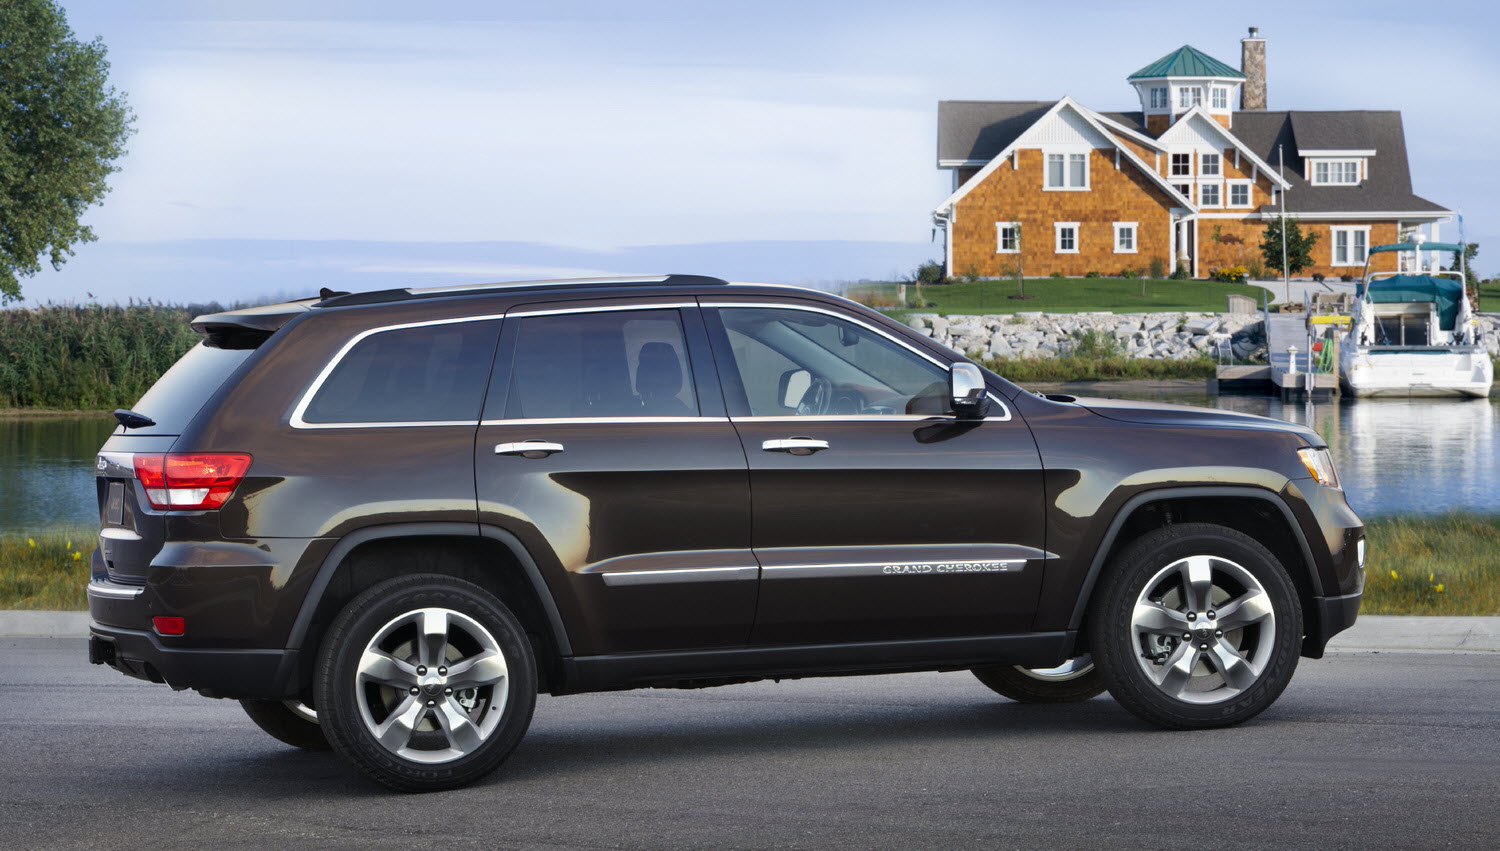 2011 jeep grand cherokee overland summit and jeep liberty jet. Black Bedroom Furniture Sets. Home Design Ideas